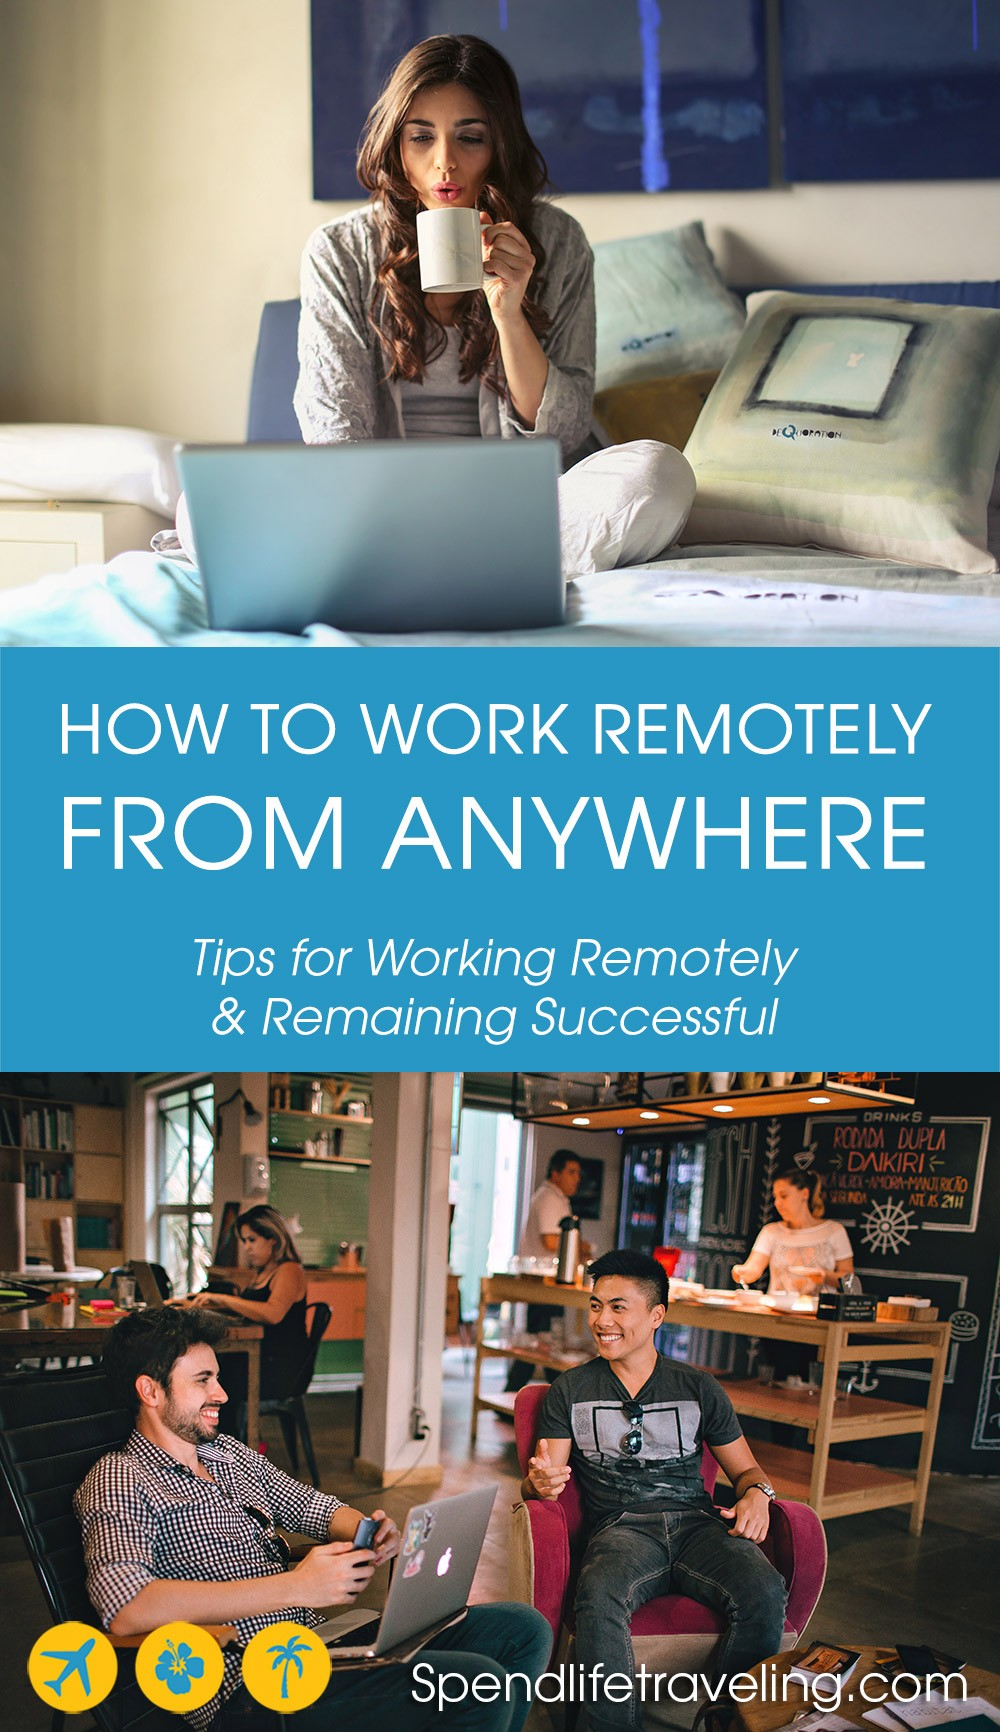 Do you think remote work is for you? Check out these tips and questions to find out what remote working style fits you best. #remotework #workremotely #digitalnomad #locationindependent